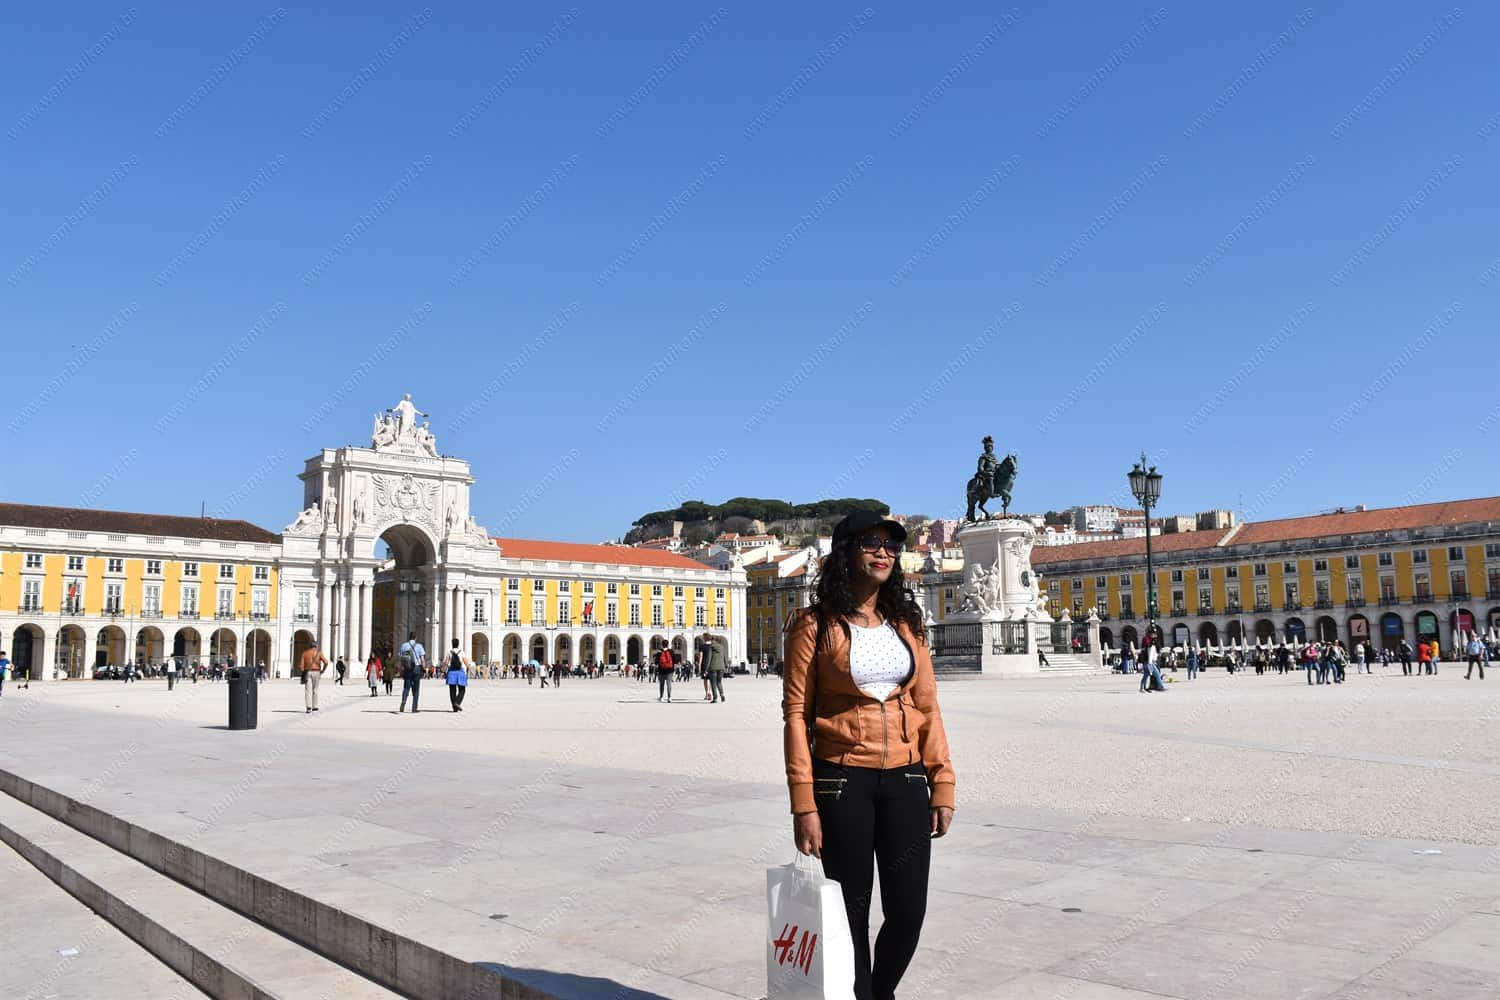 Why People Should Visit Lisbon